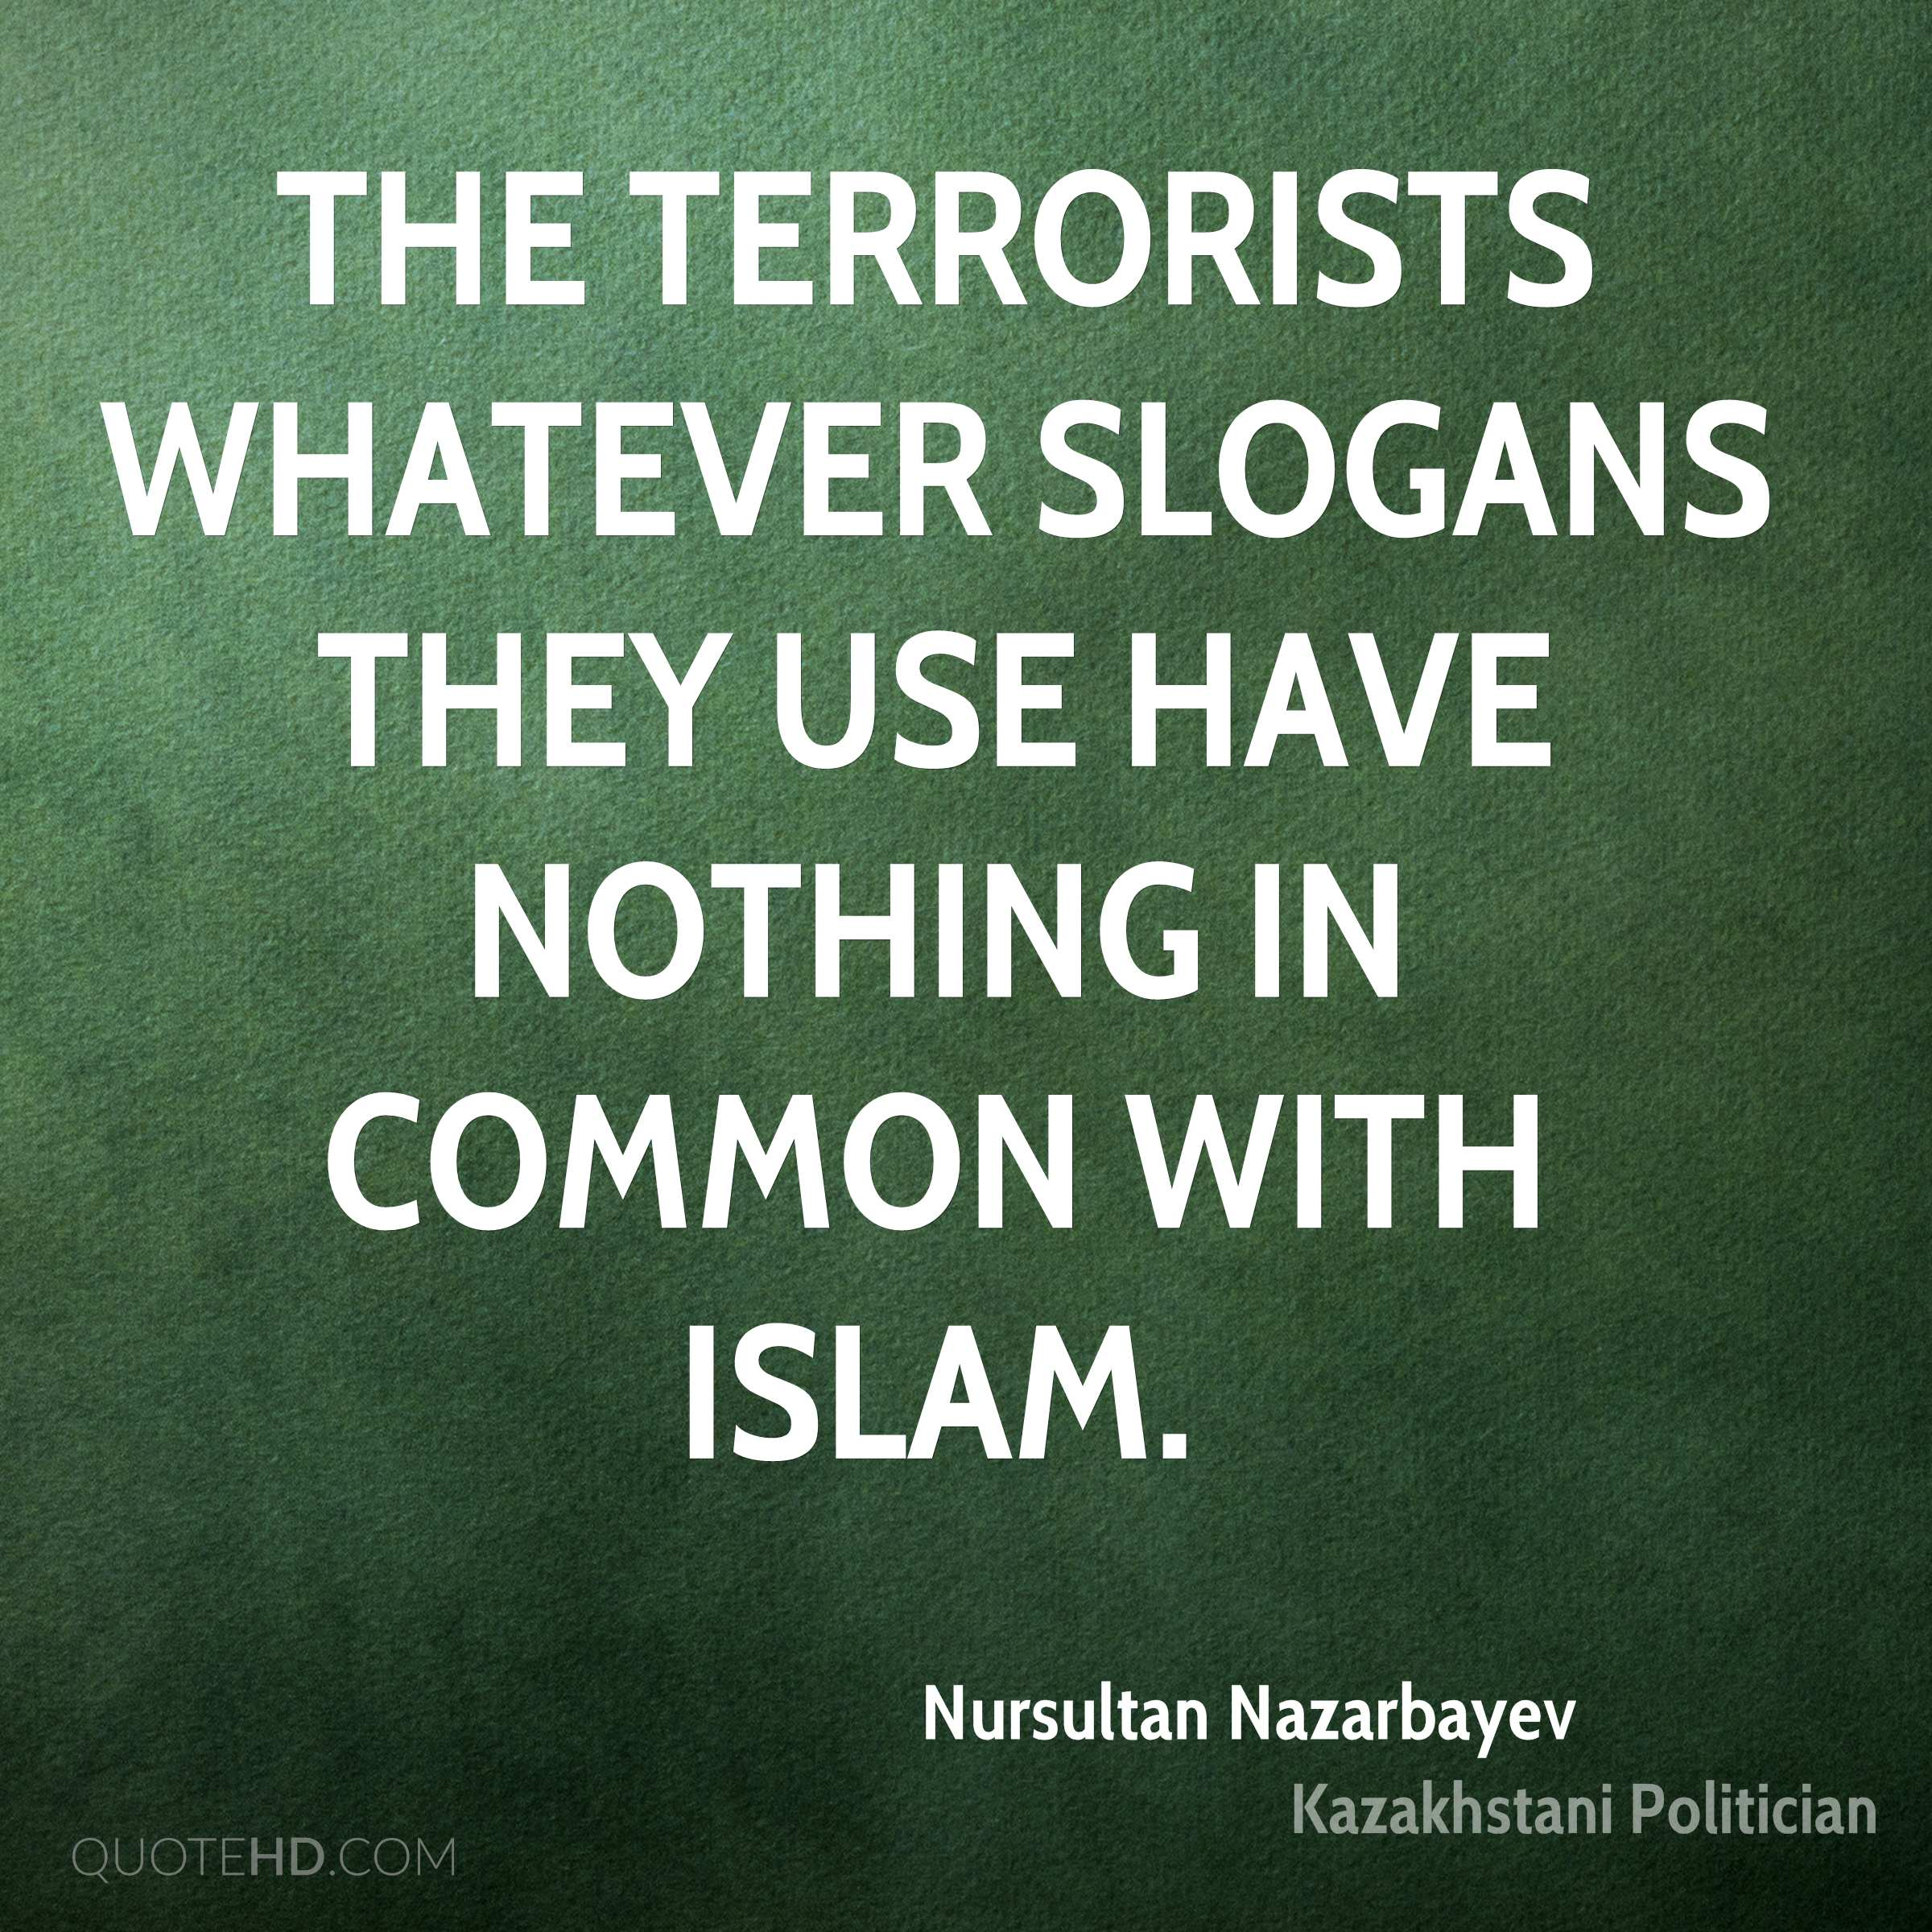 The terrorists whatever slogans they use have nothing in common with Islam.